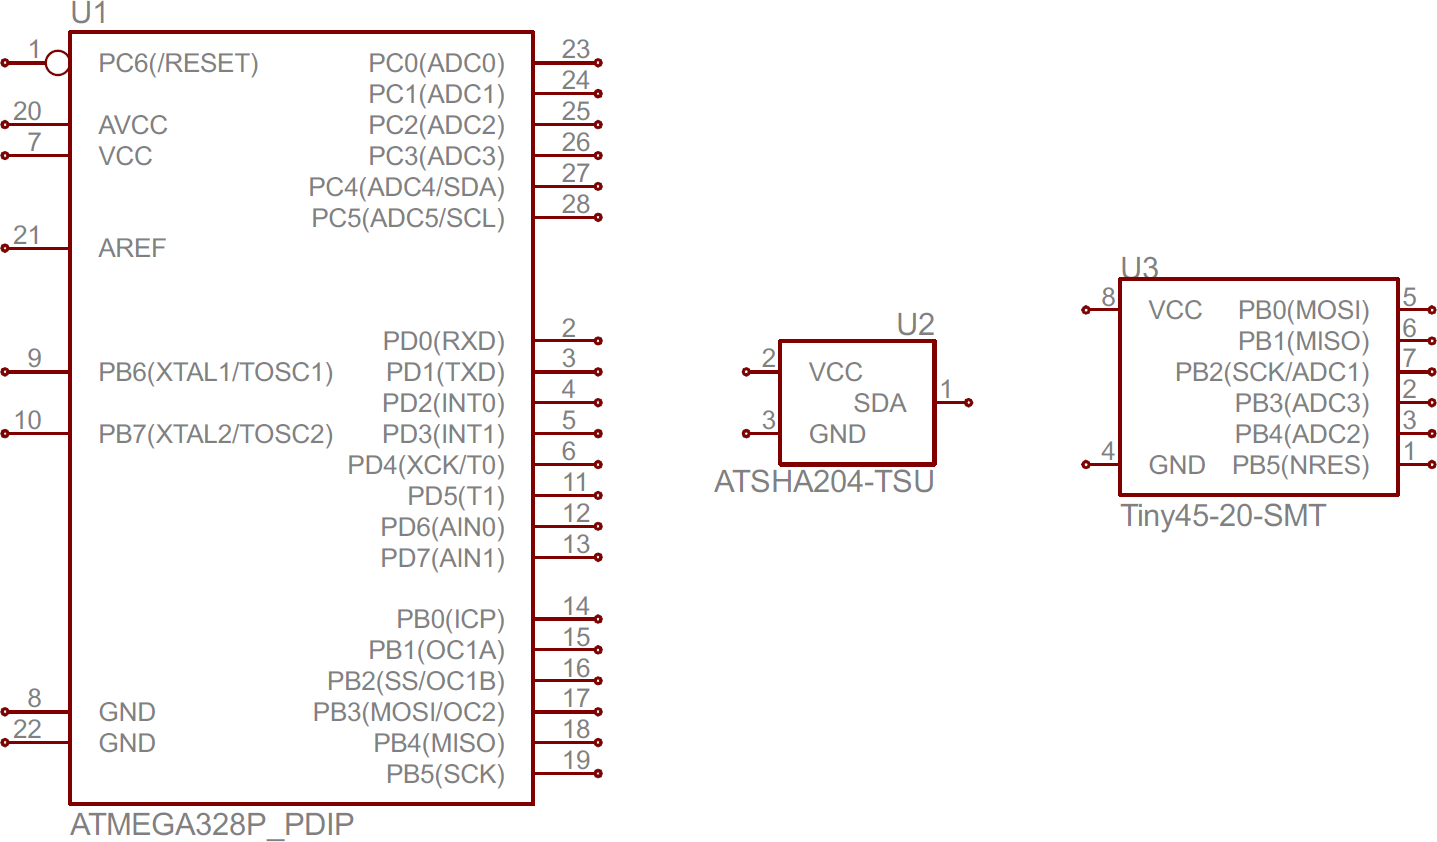 Electric Car Schematic Diagram How To Read A Atmega328 Atsha204 And Attiny45 Ic Symbols